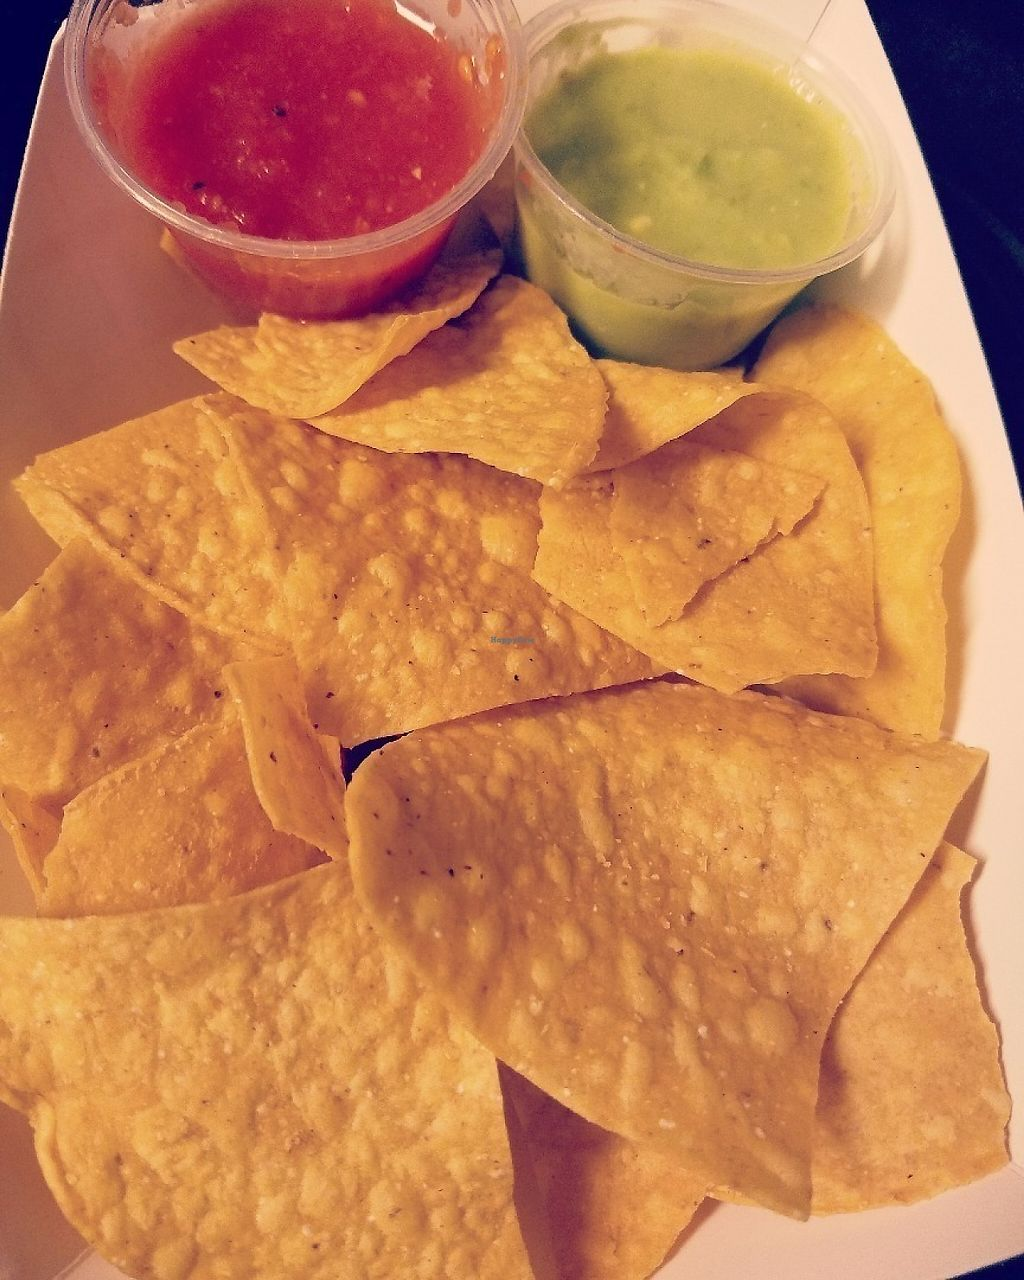 Photo of Lady Go-Go's   by ladygogo <br/>Chips and salsa  <br/> May 9, 2017  - <a href='/contact/abuse/image/91853/257279'>Report</a>